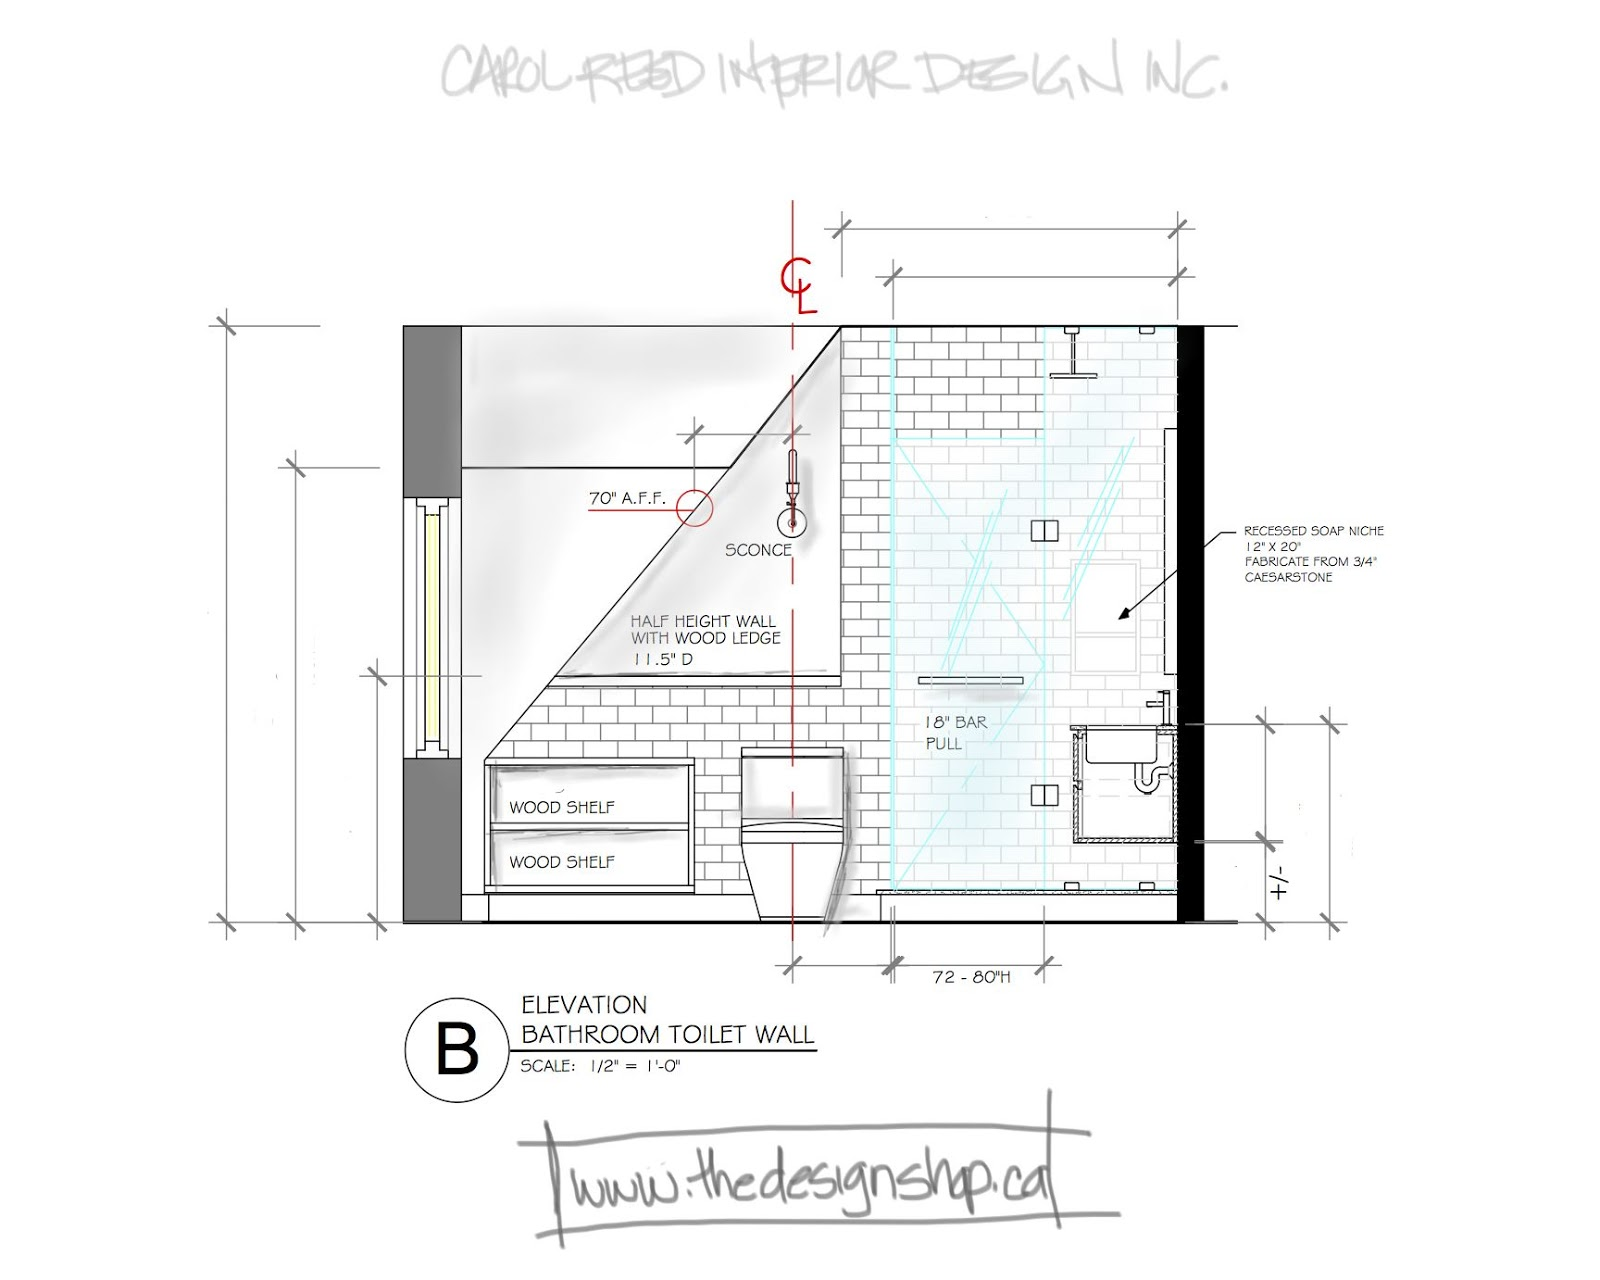 Creed E Design Bathroom From Concept To Sneak Peek